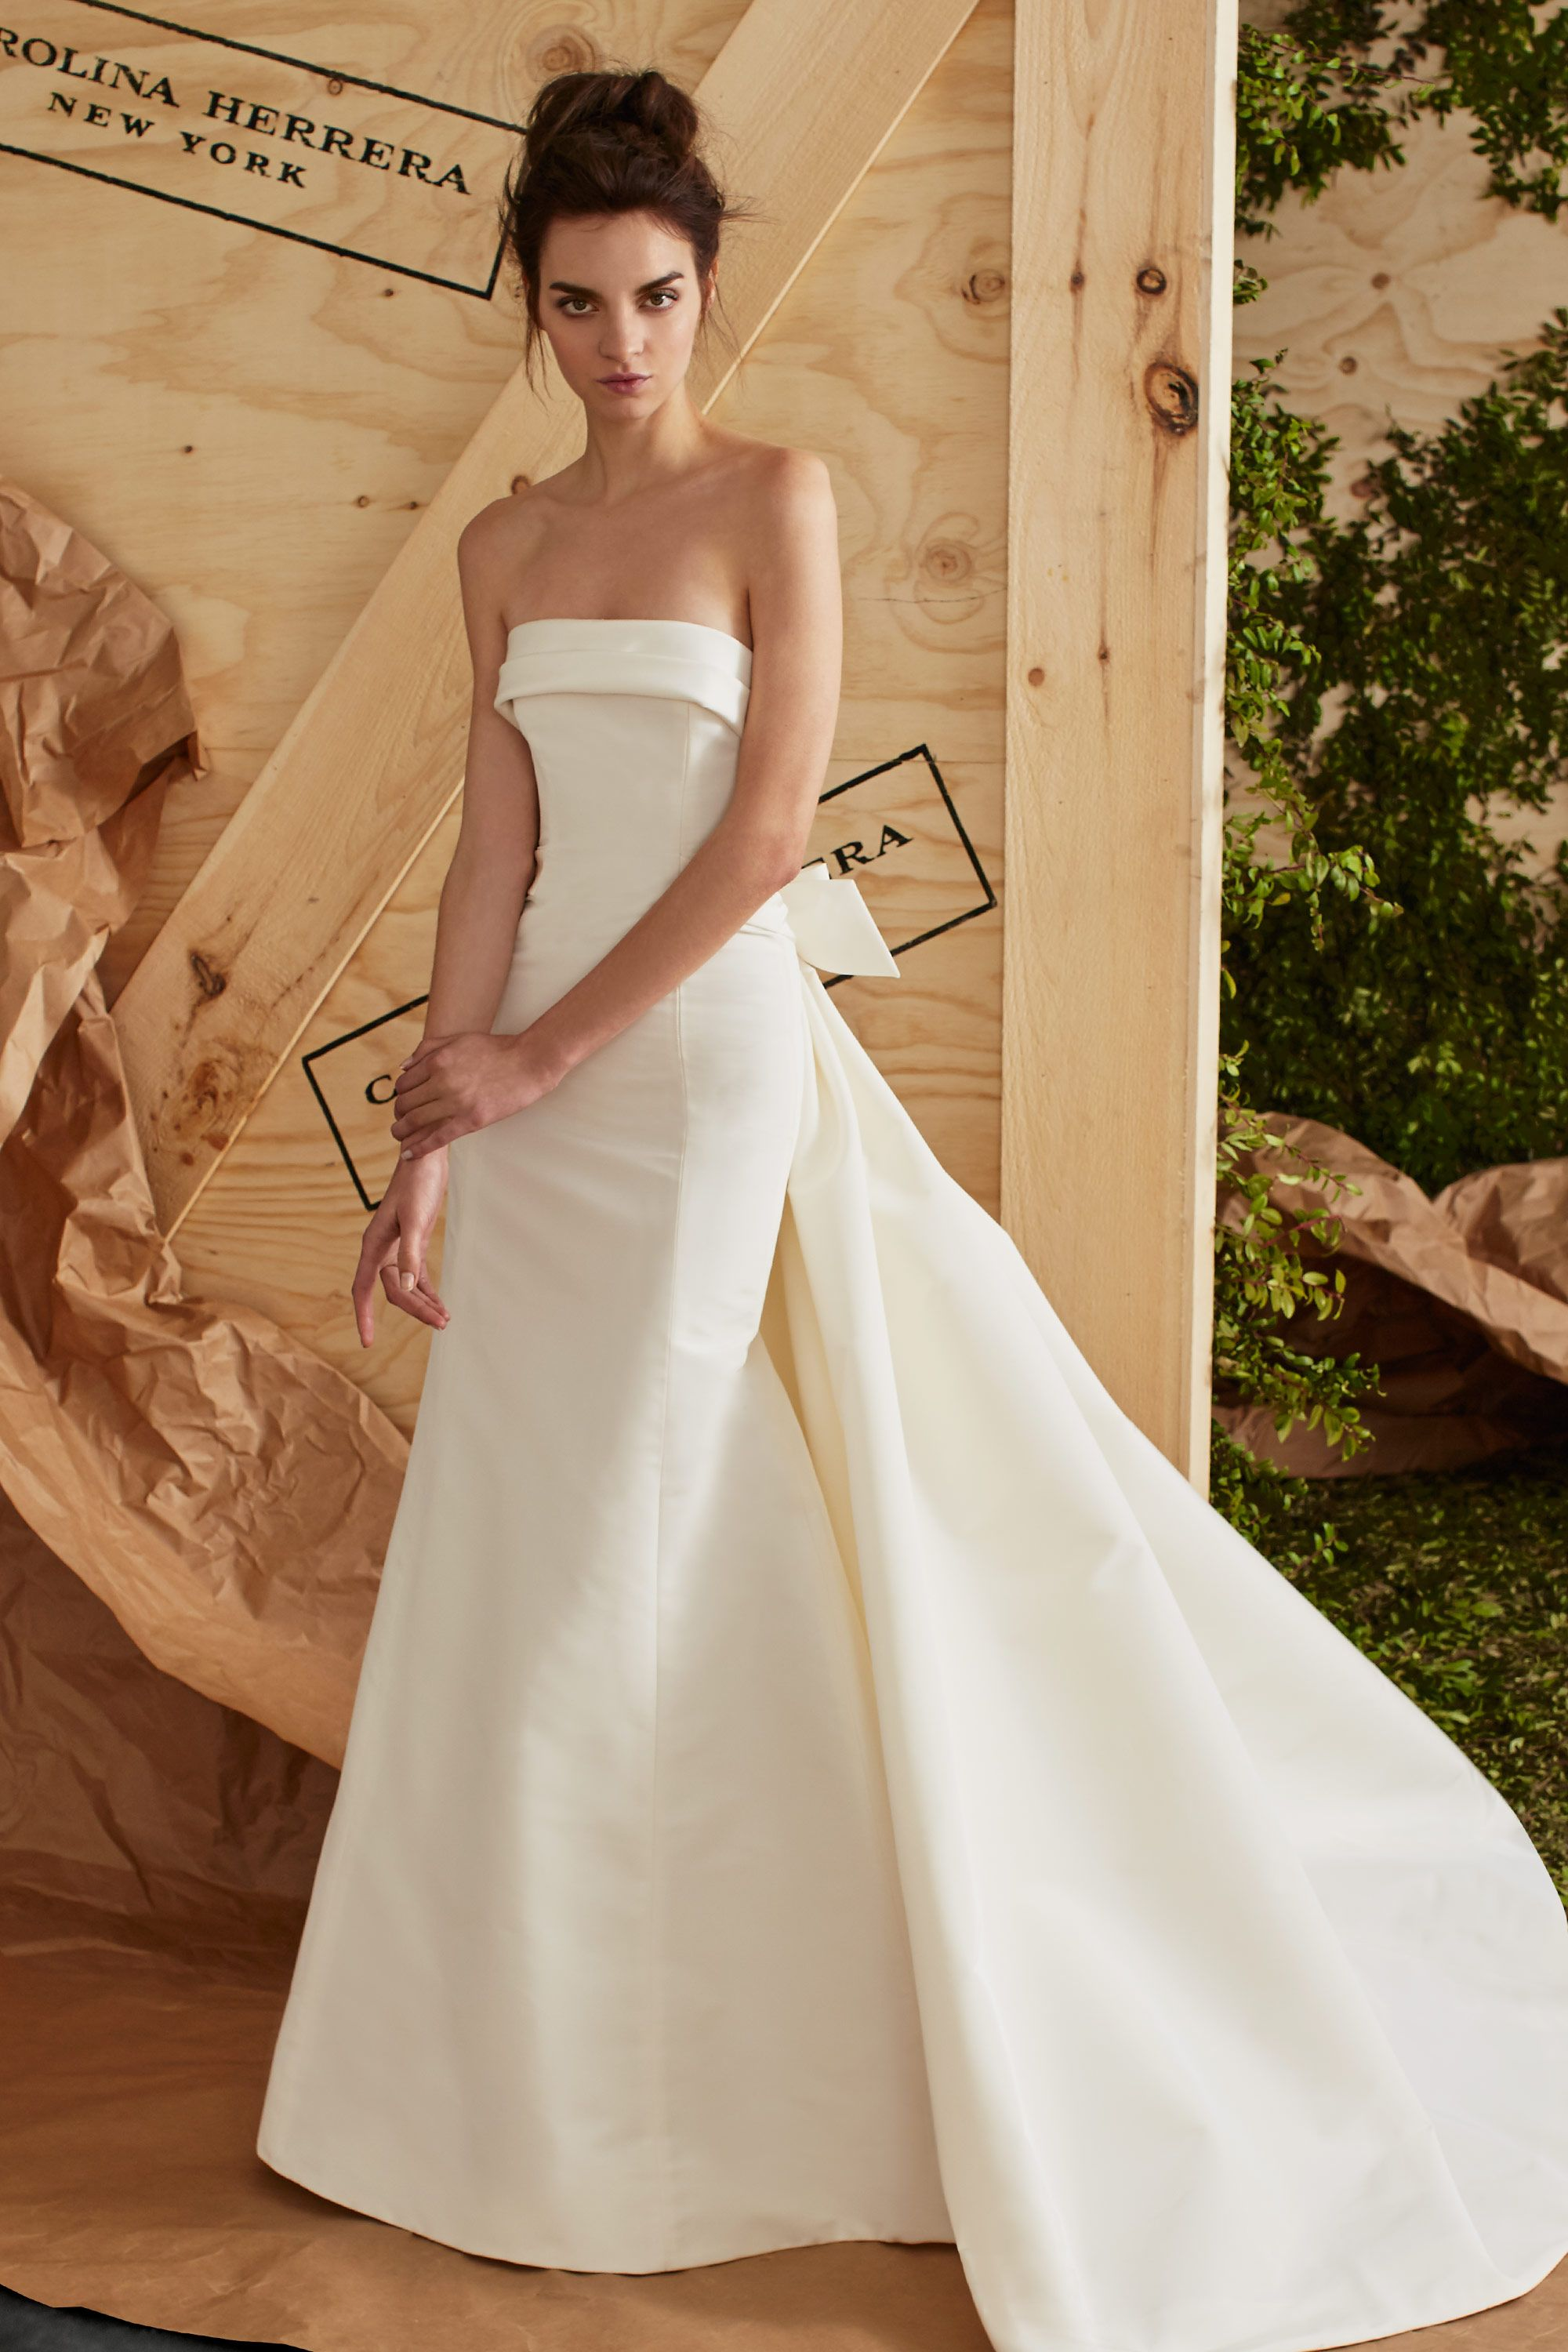 Retro wedding dress  Descubra a Coleção  Vestido  Pinterest  Wedding dress Weddings